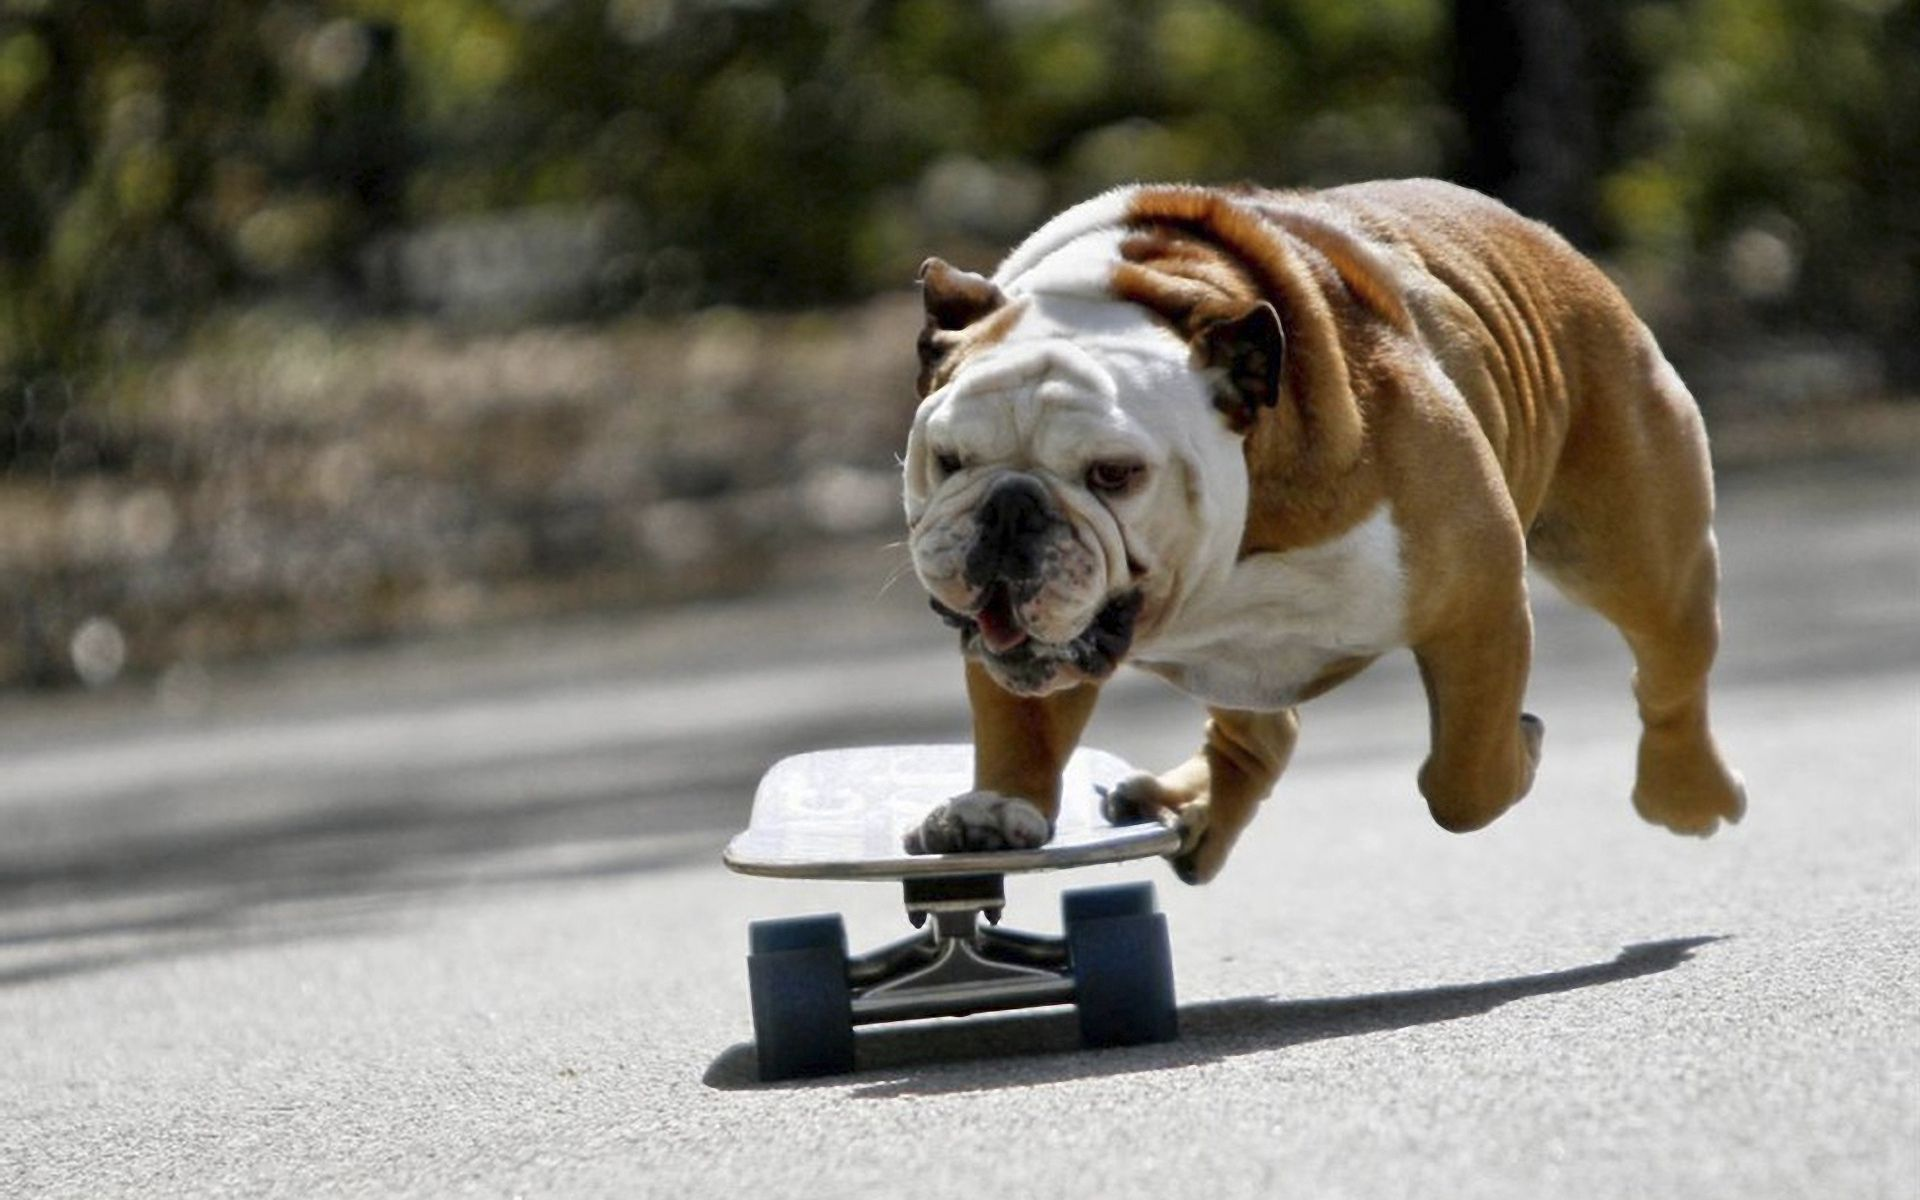 151299 download wallpaper Animals, Dog, Bulldog, Skate, Ride screensavers and pictures for free